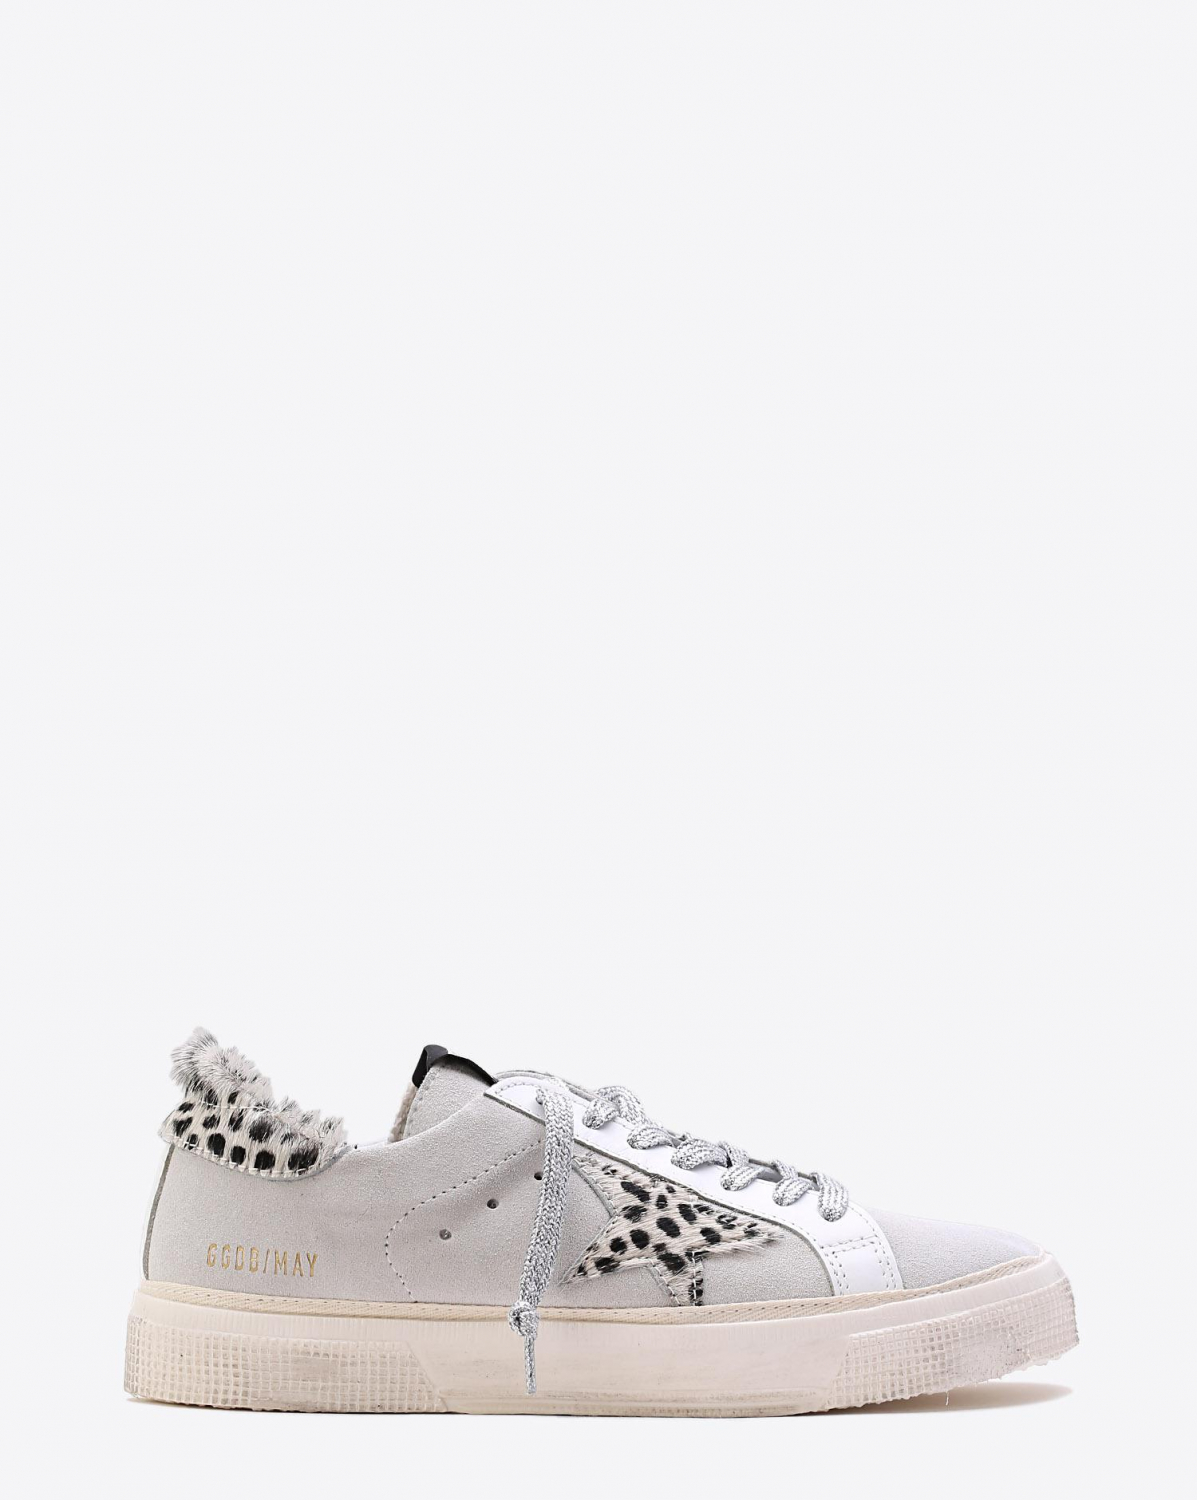 Golden Goose Woman Pré-Collection Sneakers May White Suede Leopard Star